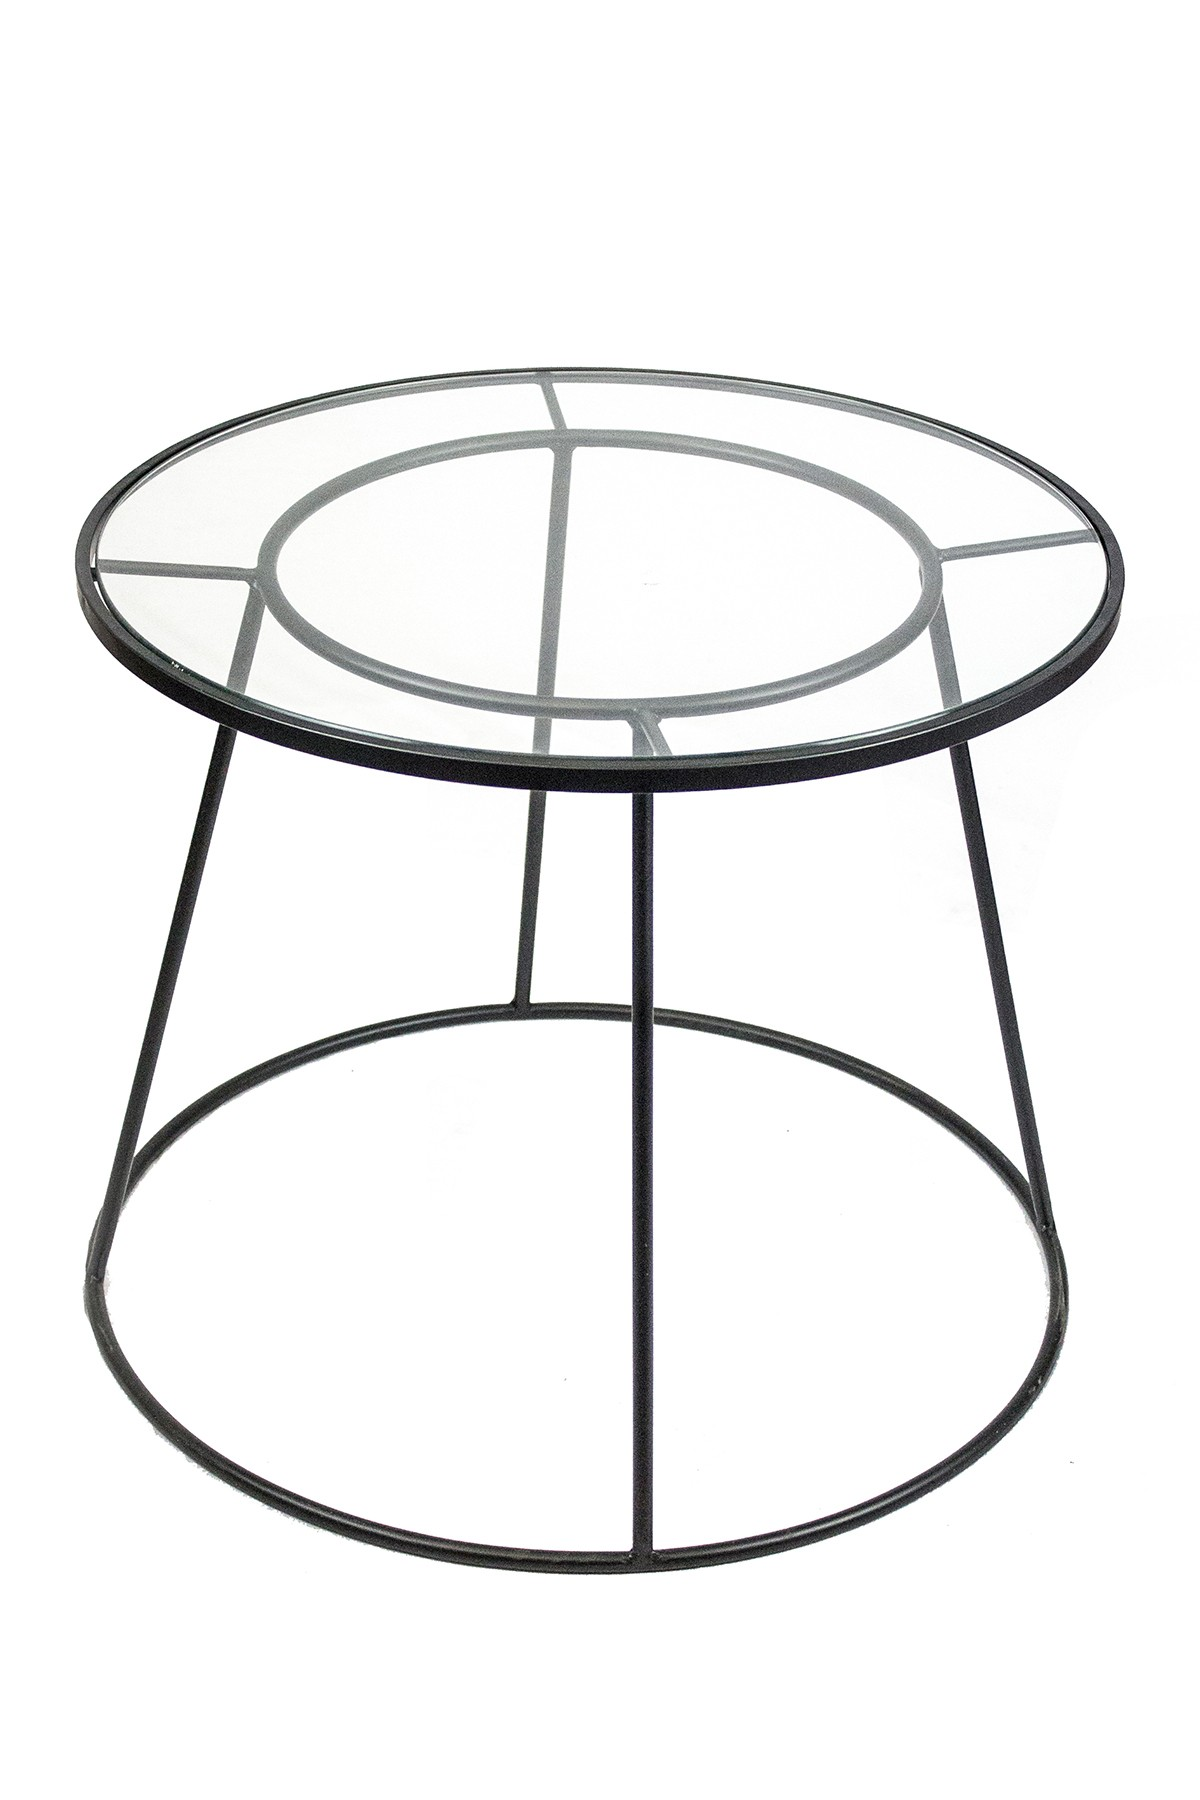 sagebrook home black metal glass accent table nordstrom rack diy bar elephant coffee top ashley furniture nesting tables with mirrored drawer silver round jcpenney rugs clearance